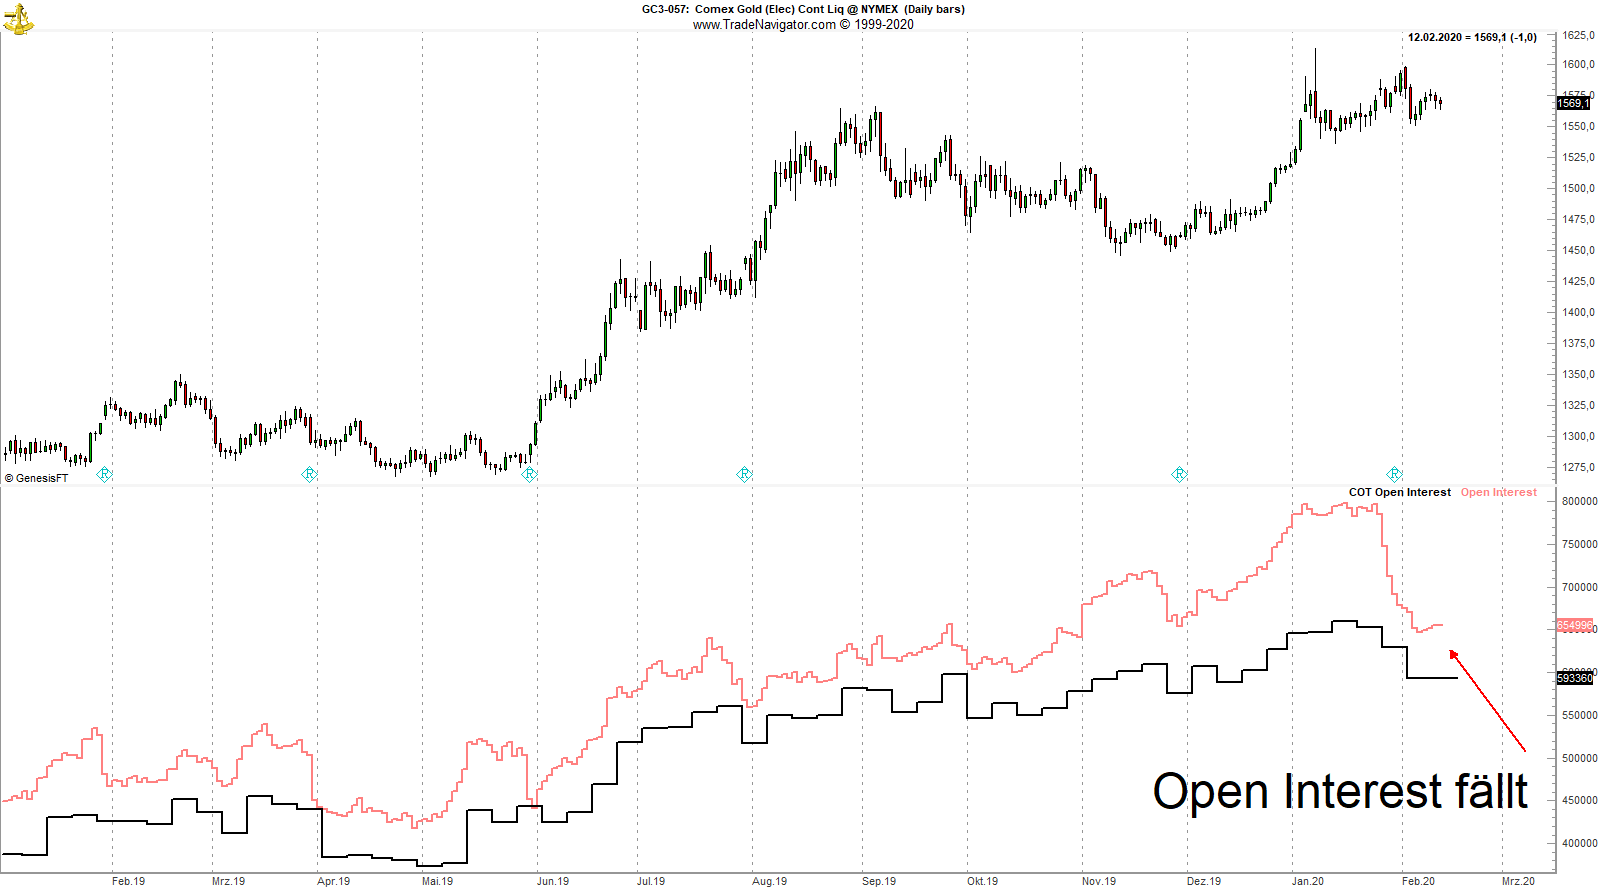 Gold_Open Interest